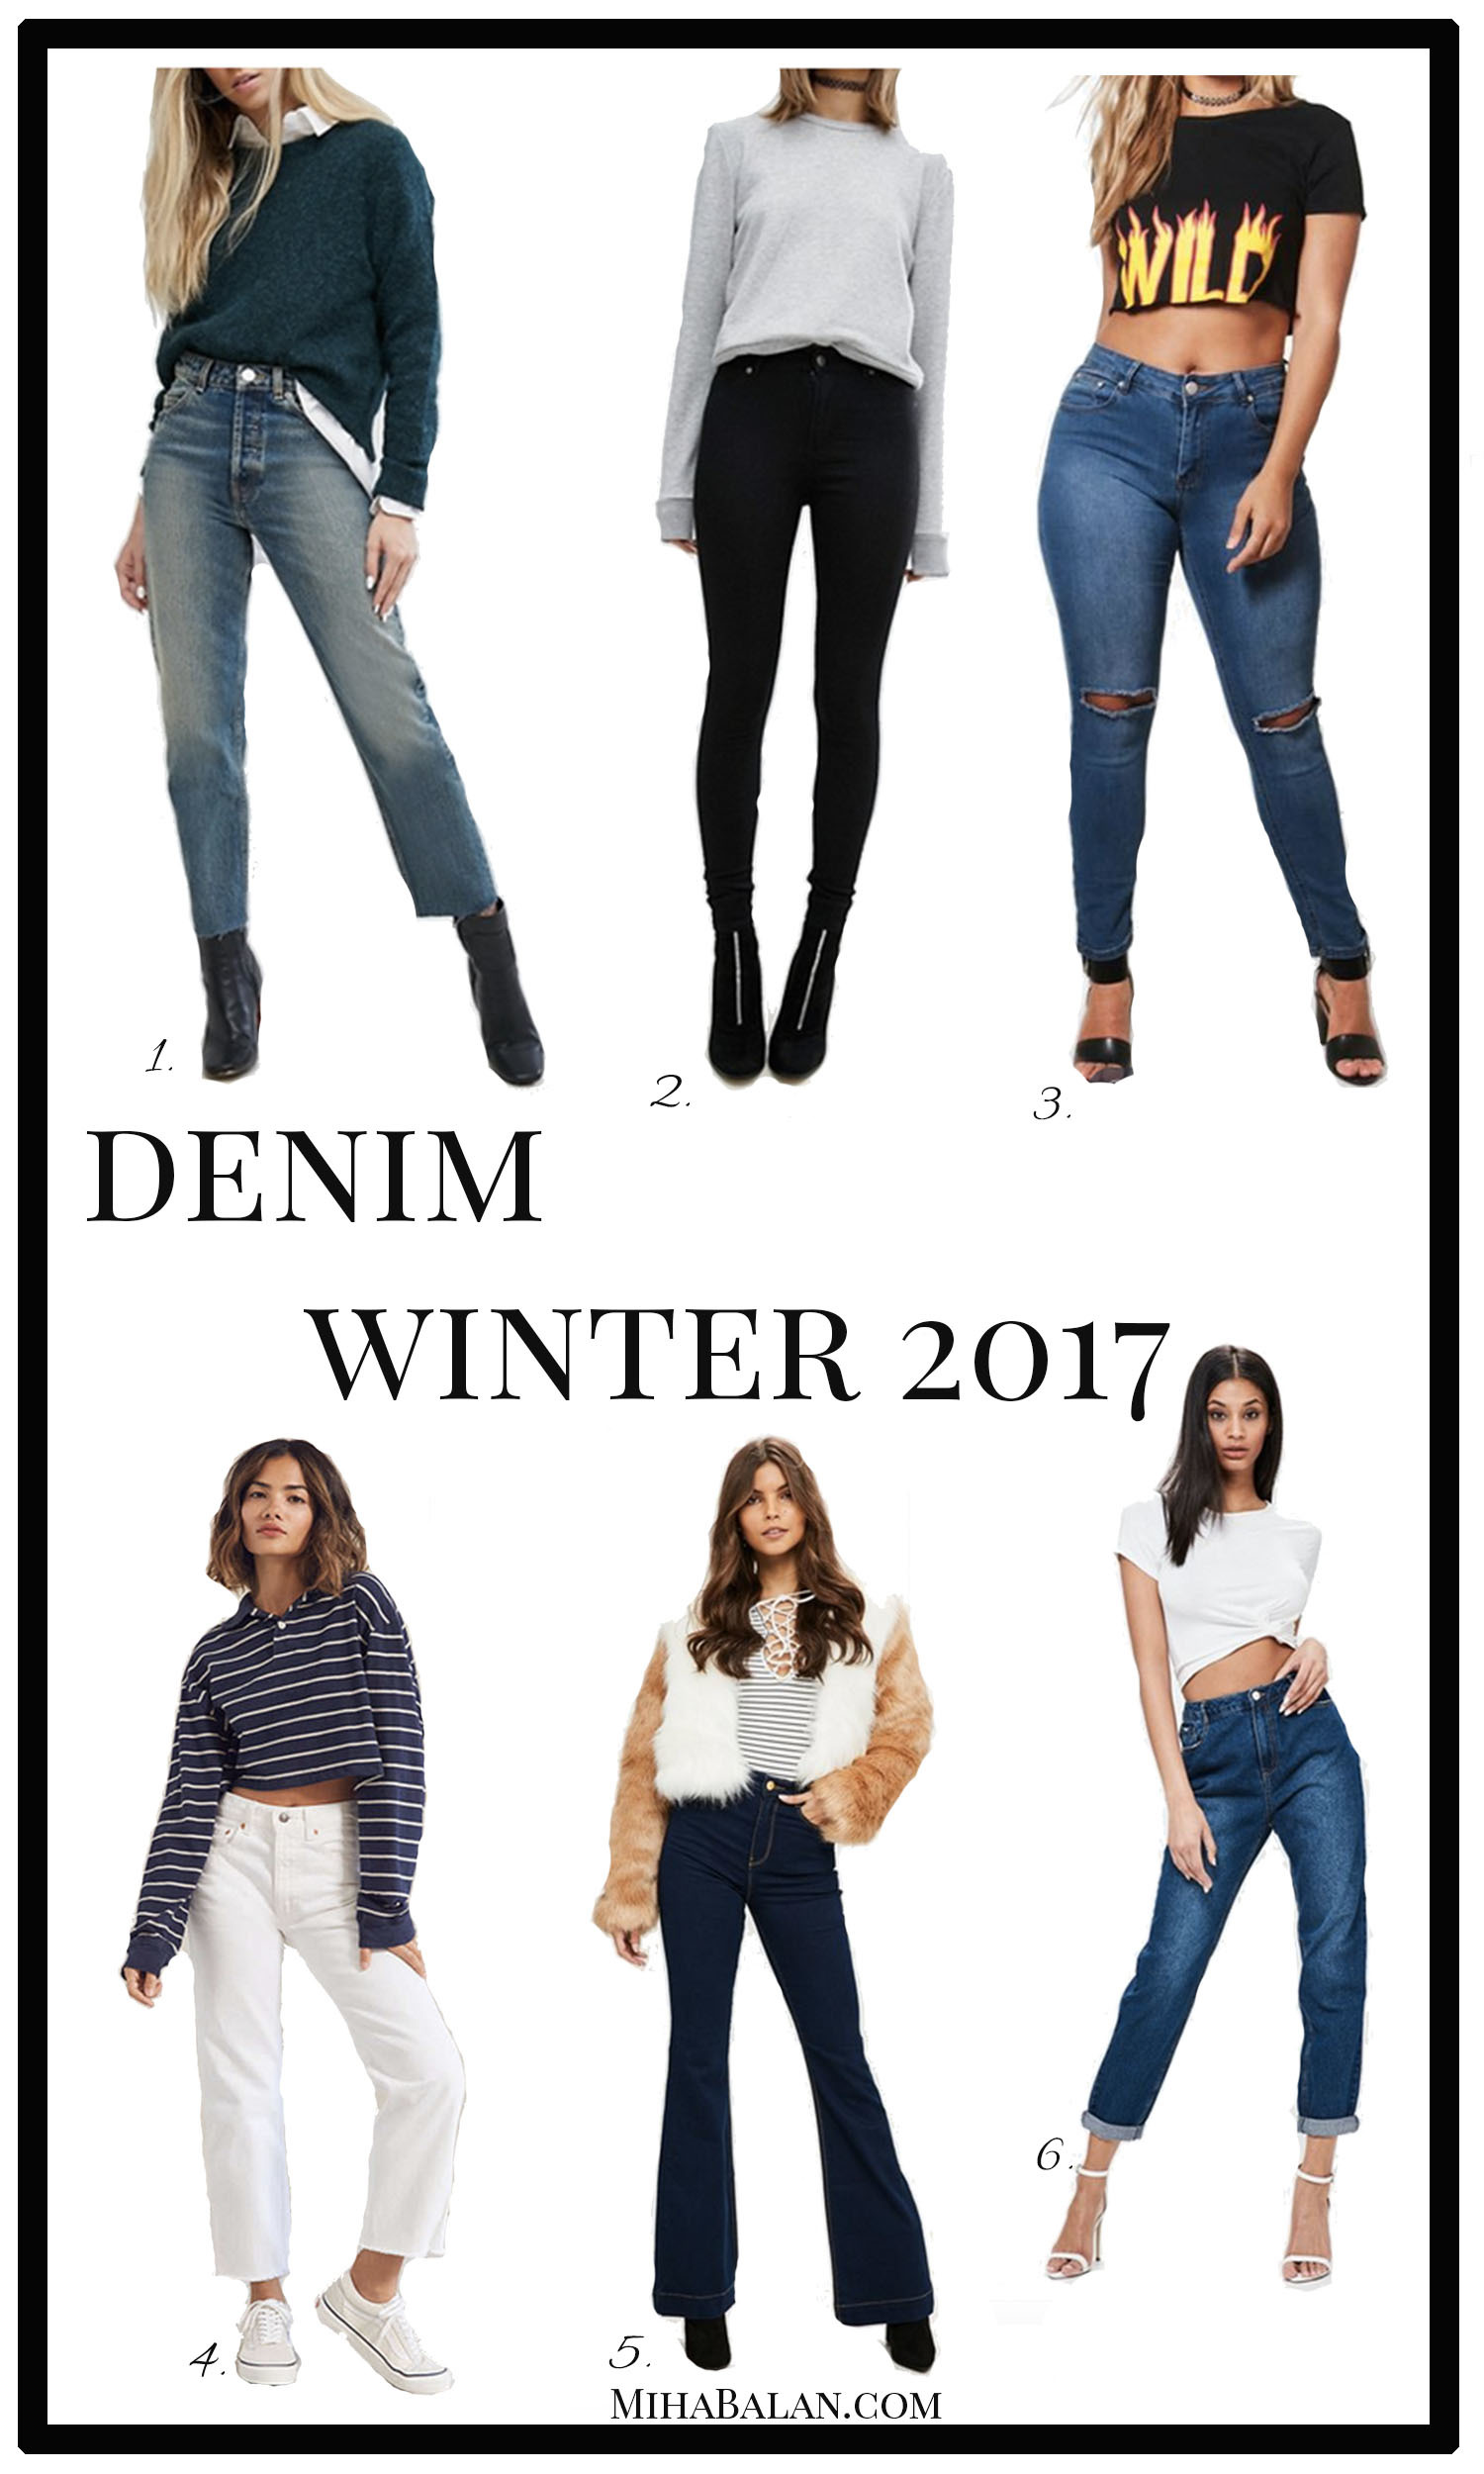 denim winter women fashion outfits 2017 2018